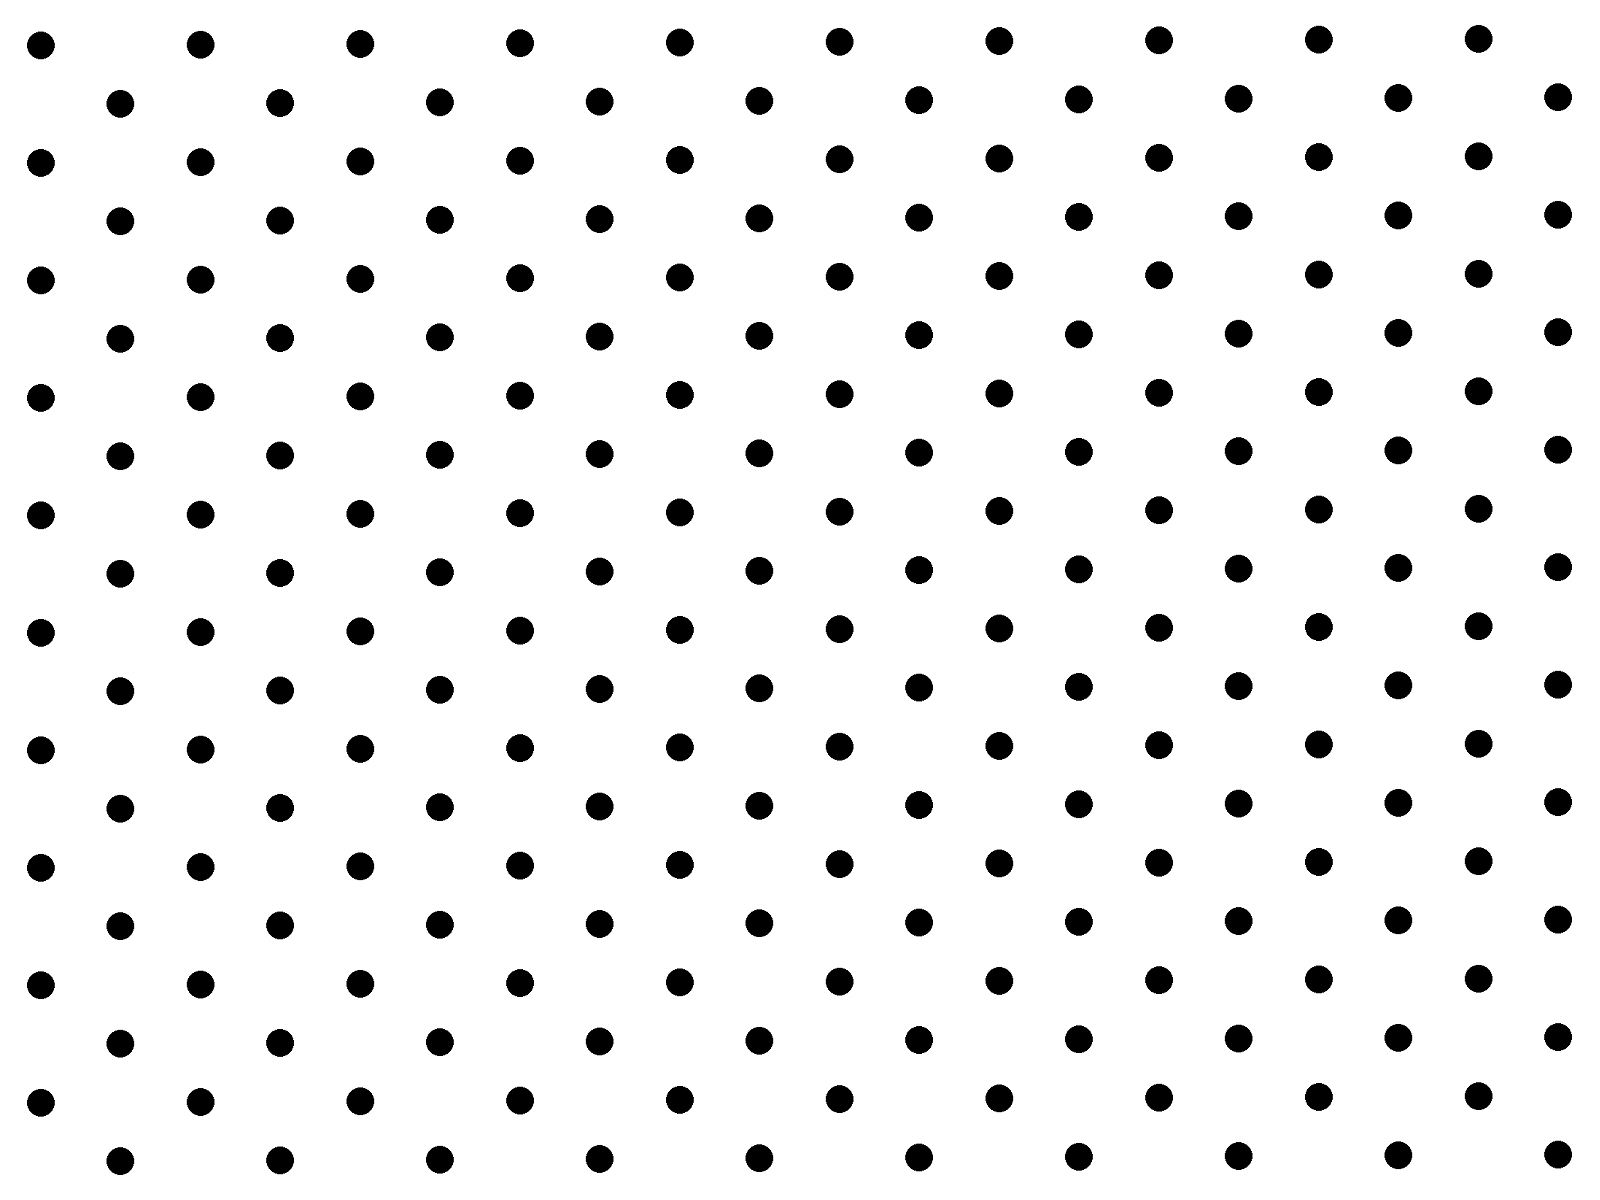 polka dot background 6 Cool Backgrounds